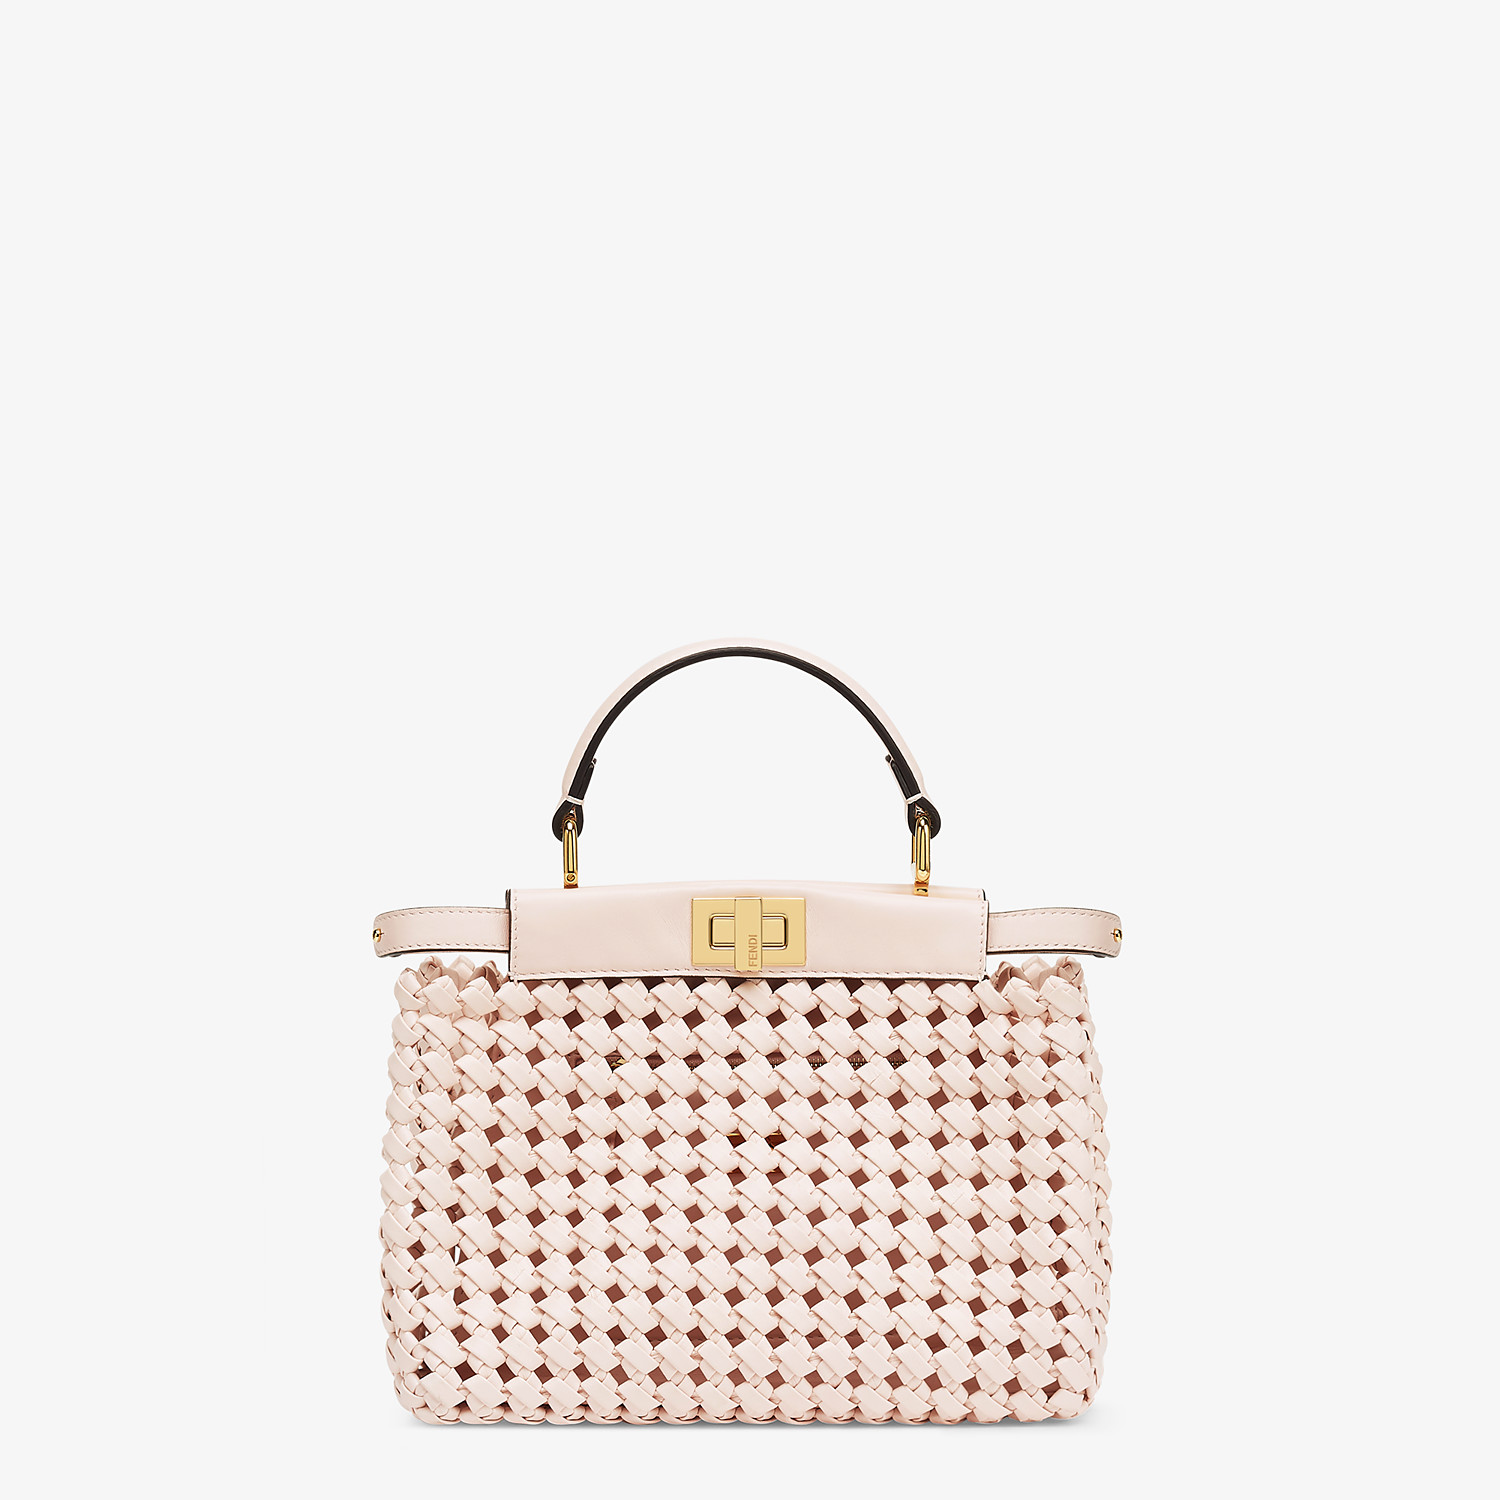 FENDI PEEKABOO ICONIC MINI - Tasche aus Interlace Leder in Rosa - view 1 detail